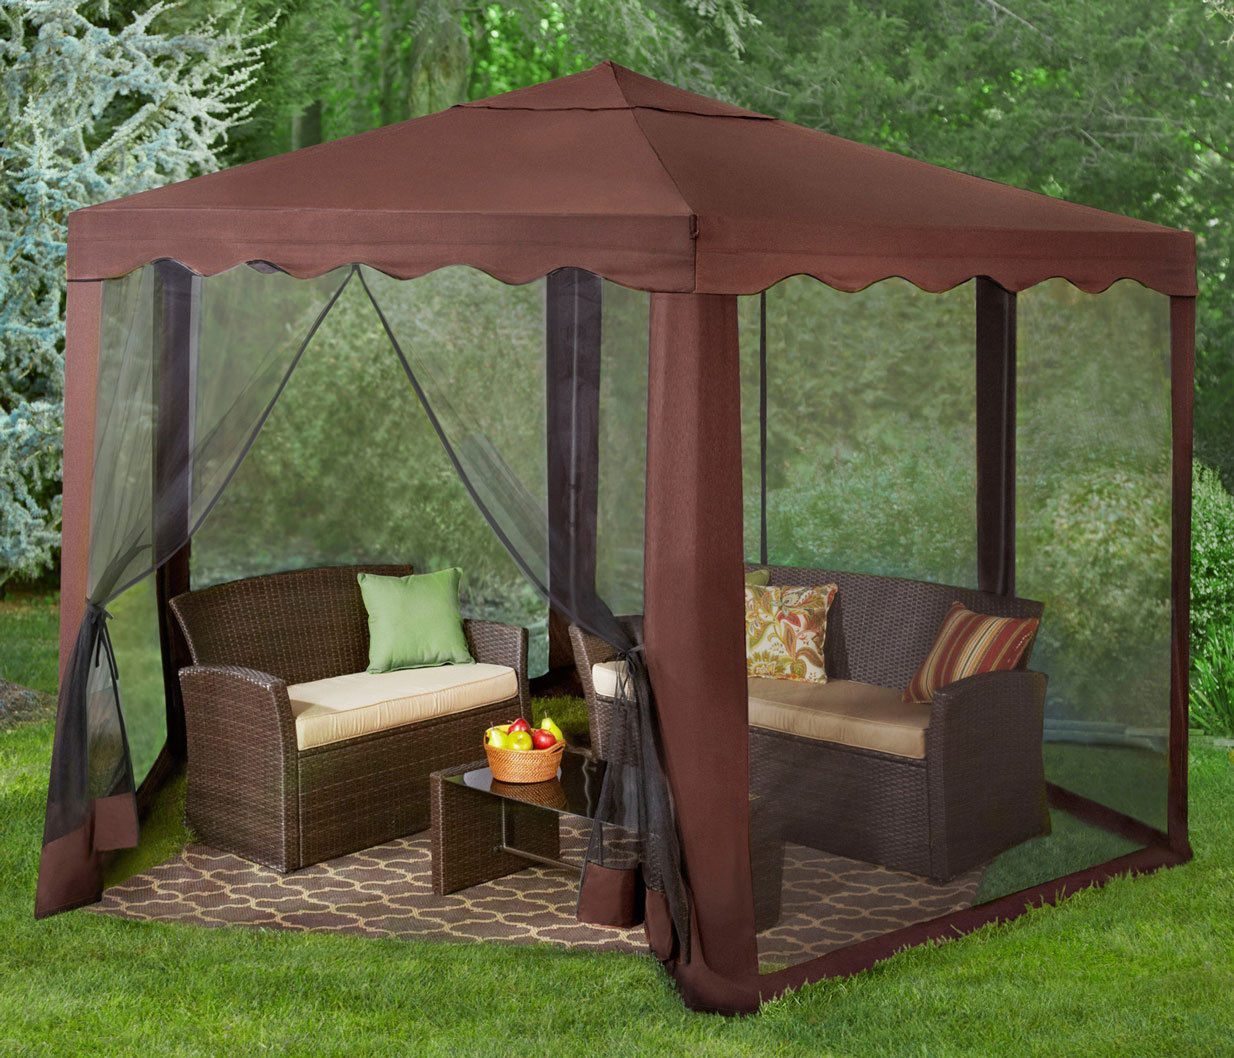 Hexagon gazebo outdoor furniture patio yard party tent for Outdoor furniture gazebo